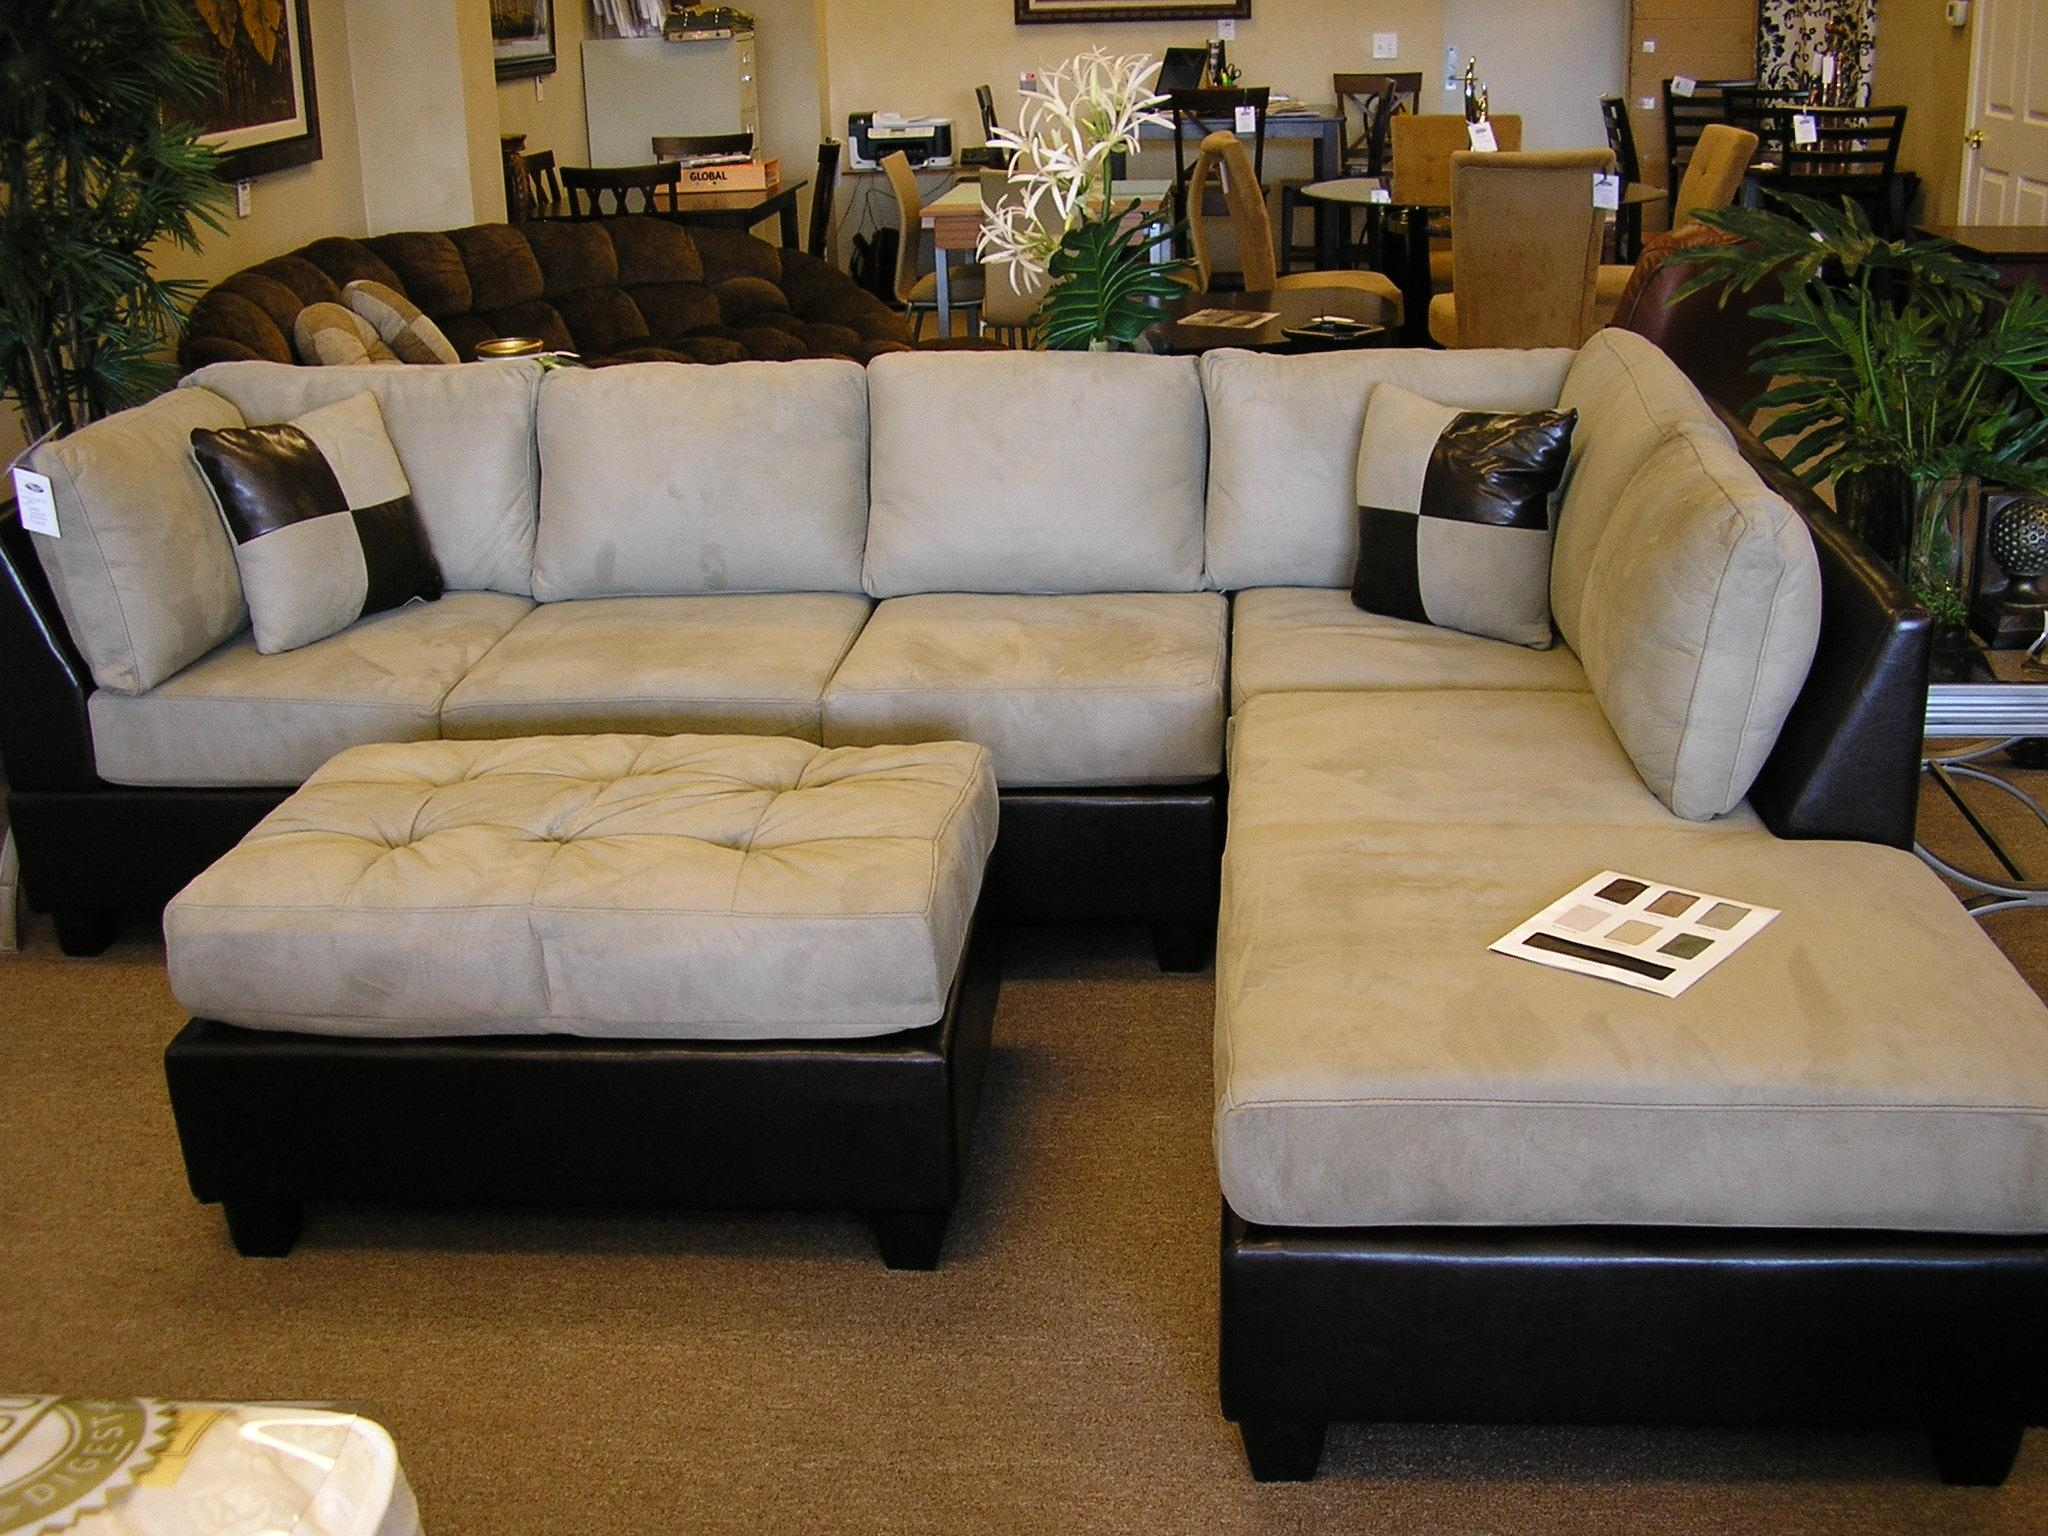 Chaise Lounge Sofa With Regard To Sofas And Chaises Lounge Sets (View 2 of 20)